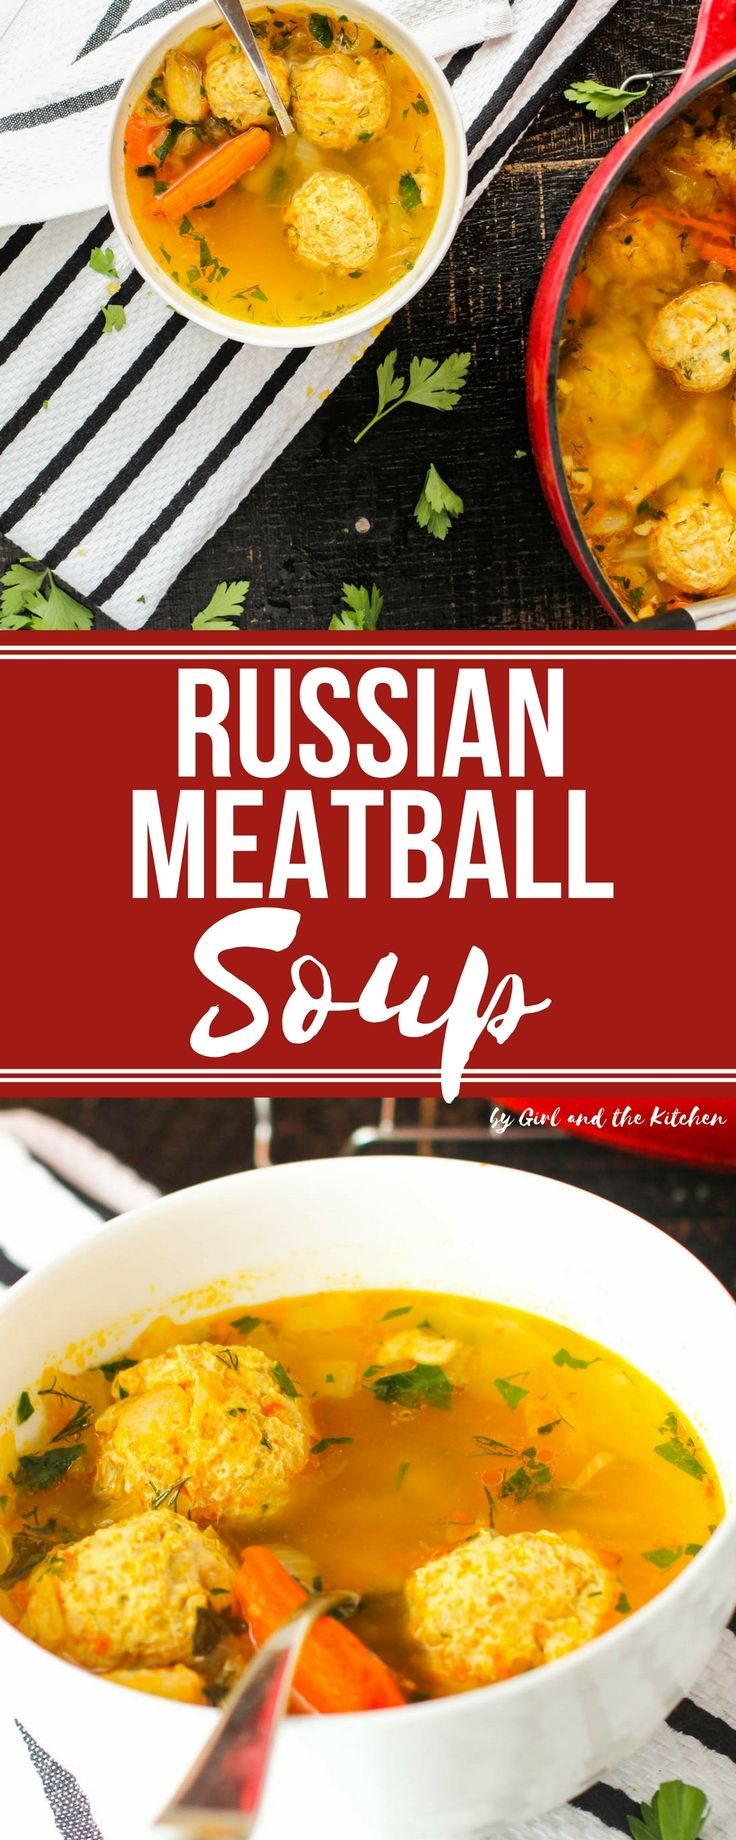 Russian Meatball Soup – Суп с фрикадельками - Girl and the Kitchen